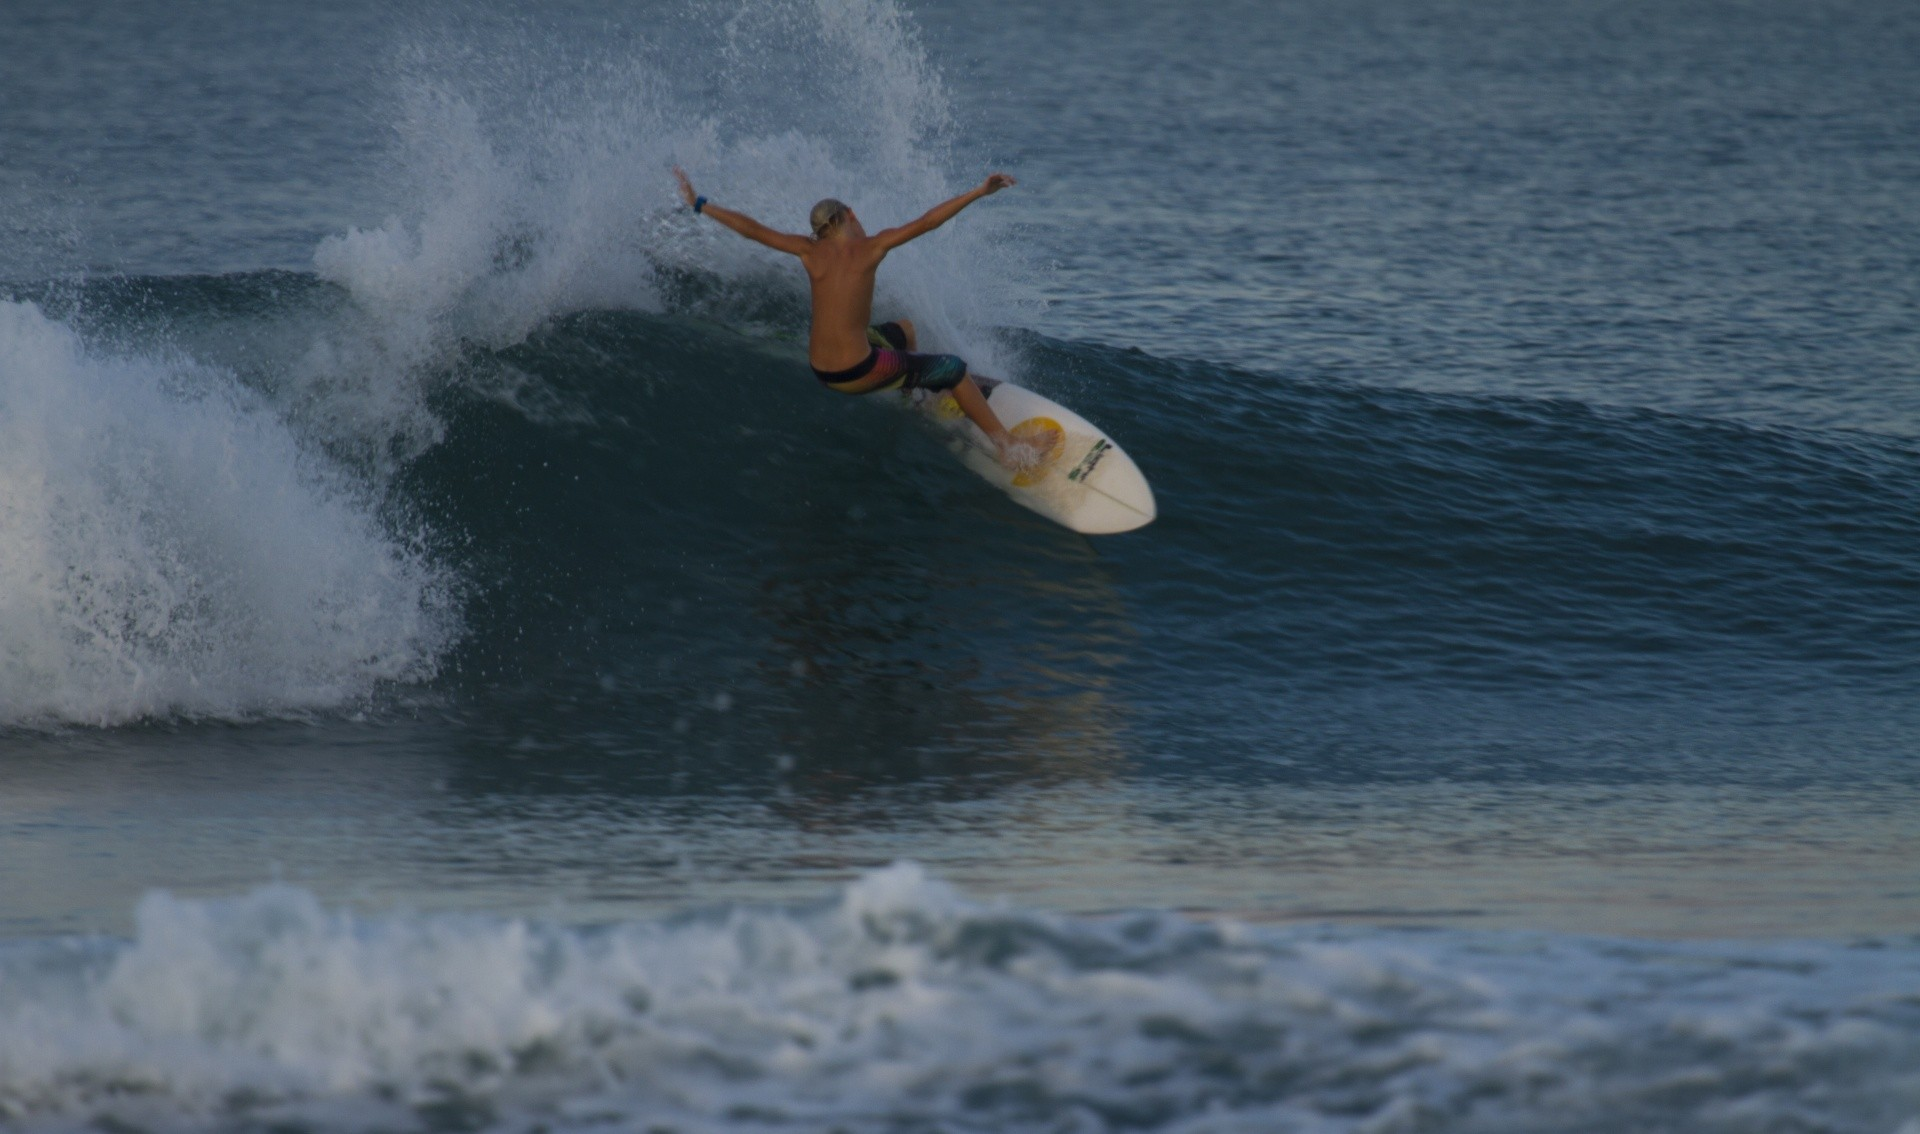 Justin Rayboun's photo of Canggu